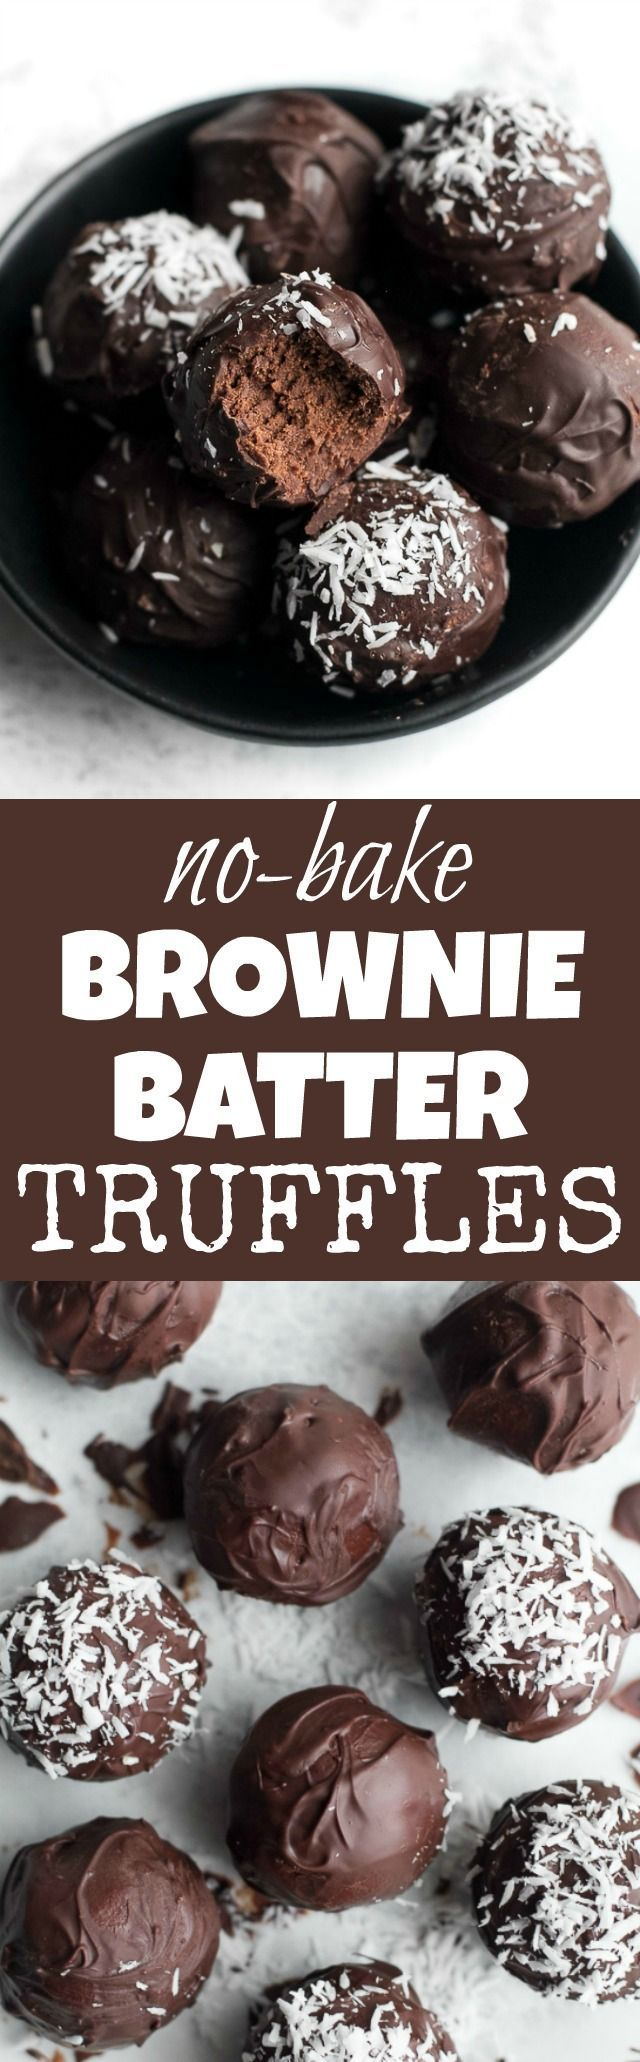 Healthy No Bake Brownie Batter Truffles that taste and feel just like a batch of soft-baked brownies but are made with NO flour, oil, eggs, or refined sugar! | http://runningwithspoons.com